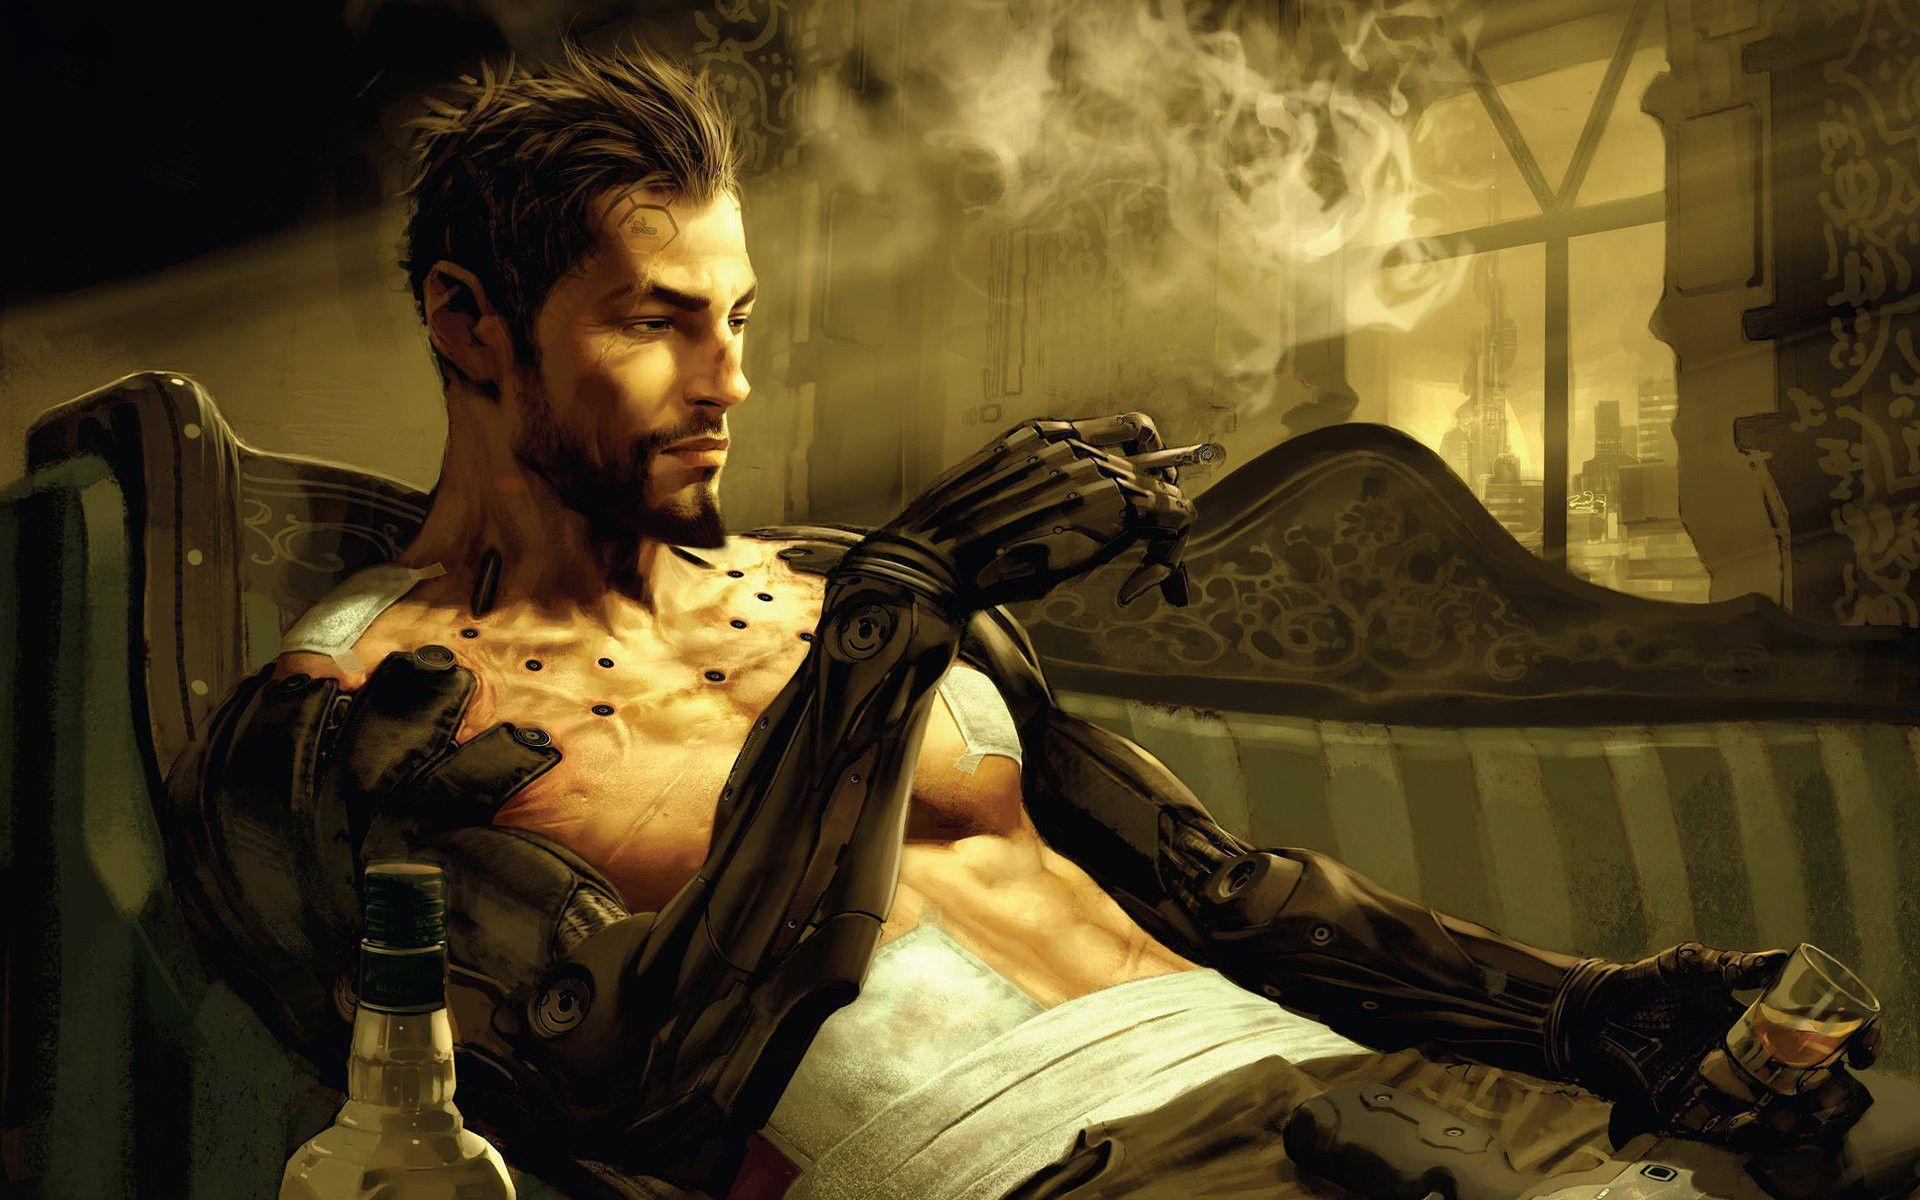 Deus Ex Wallpapers 1920x1200 Deus Ex Artwork HD Game